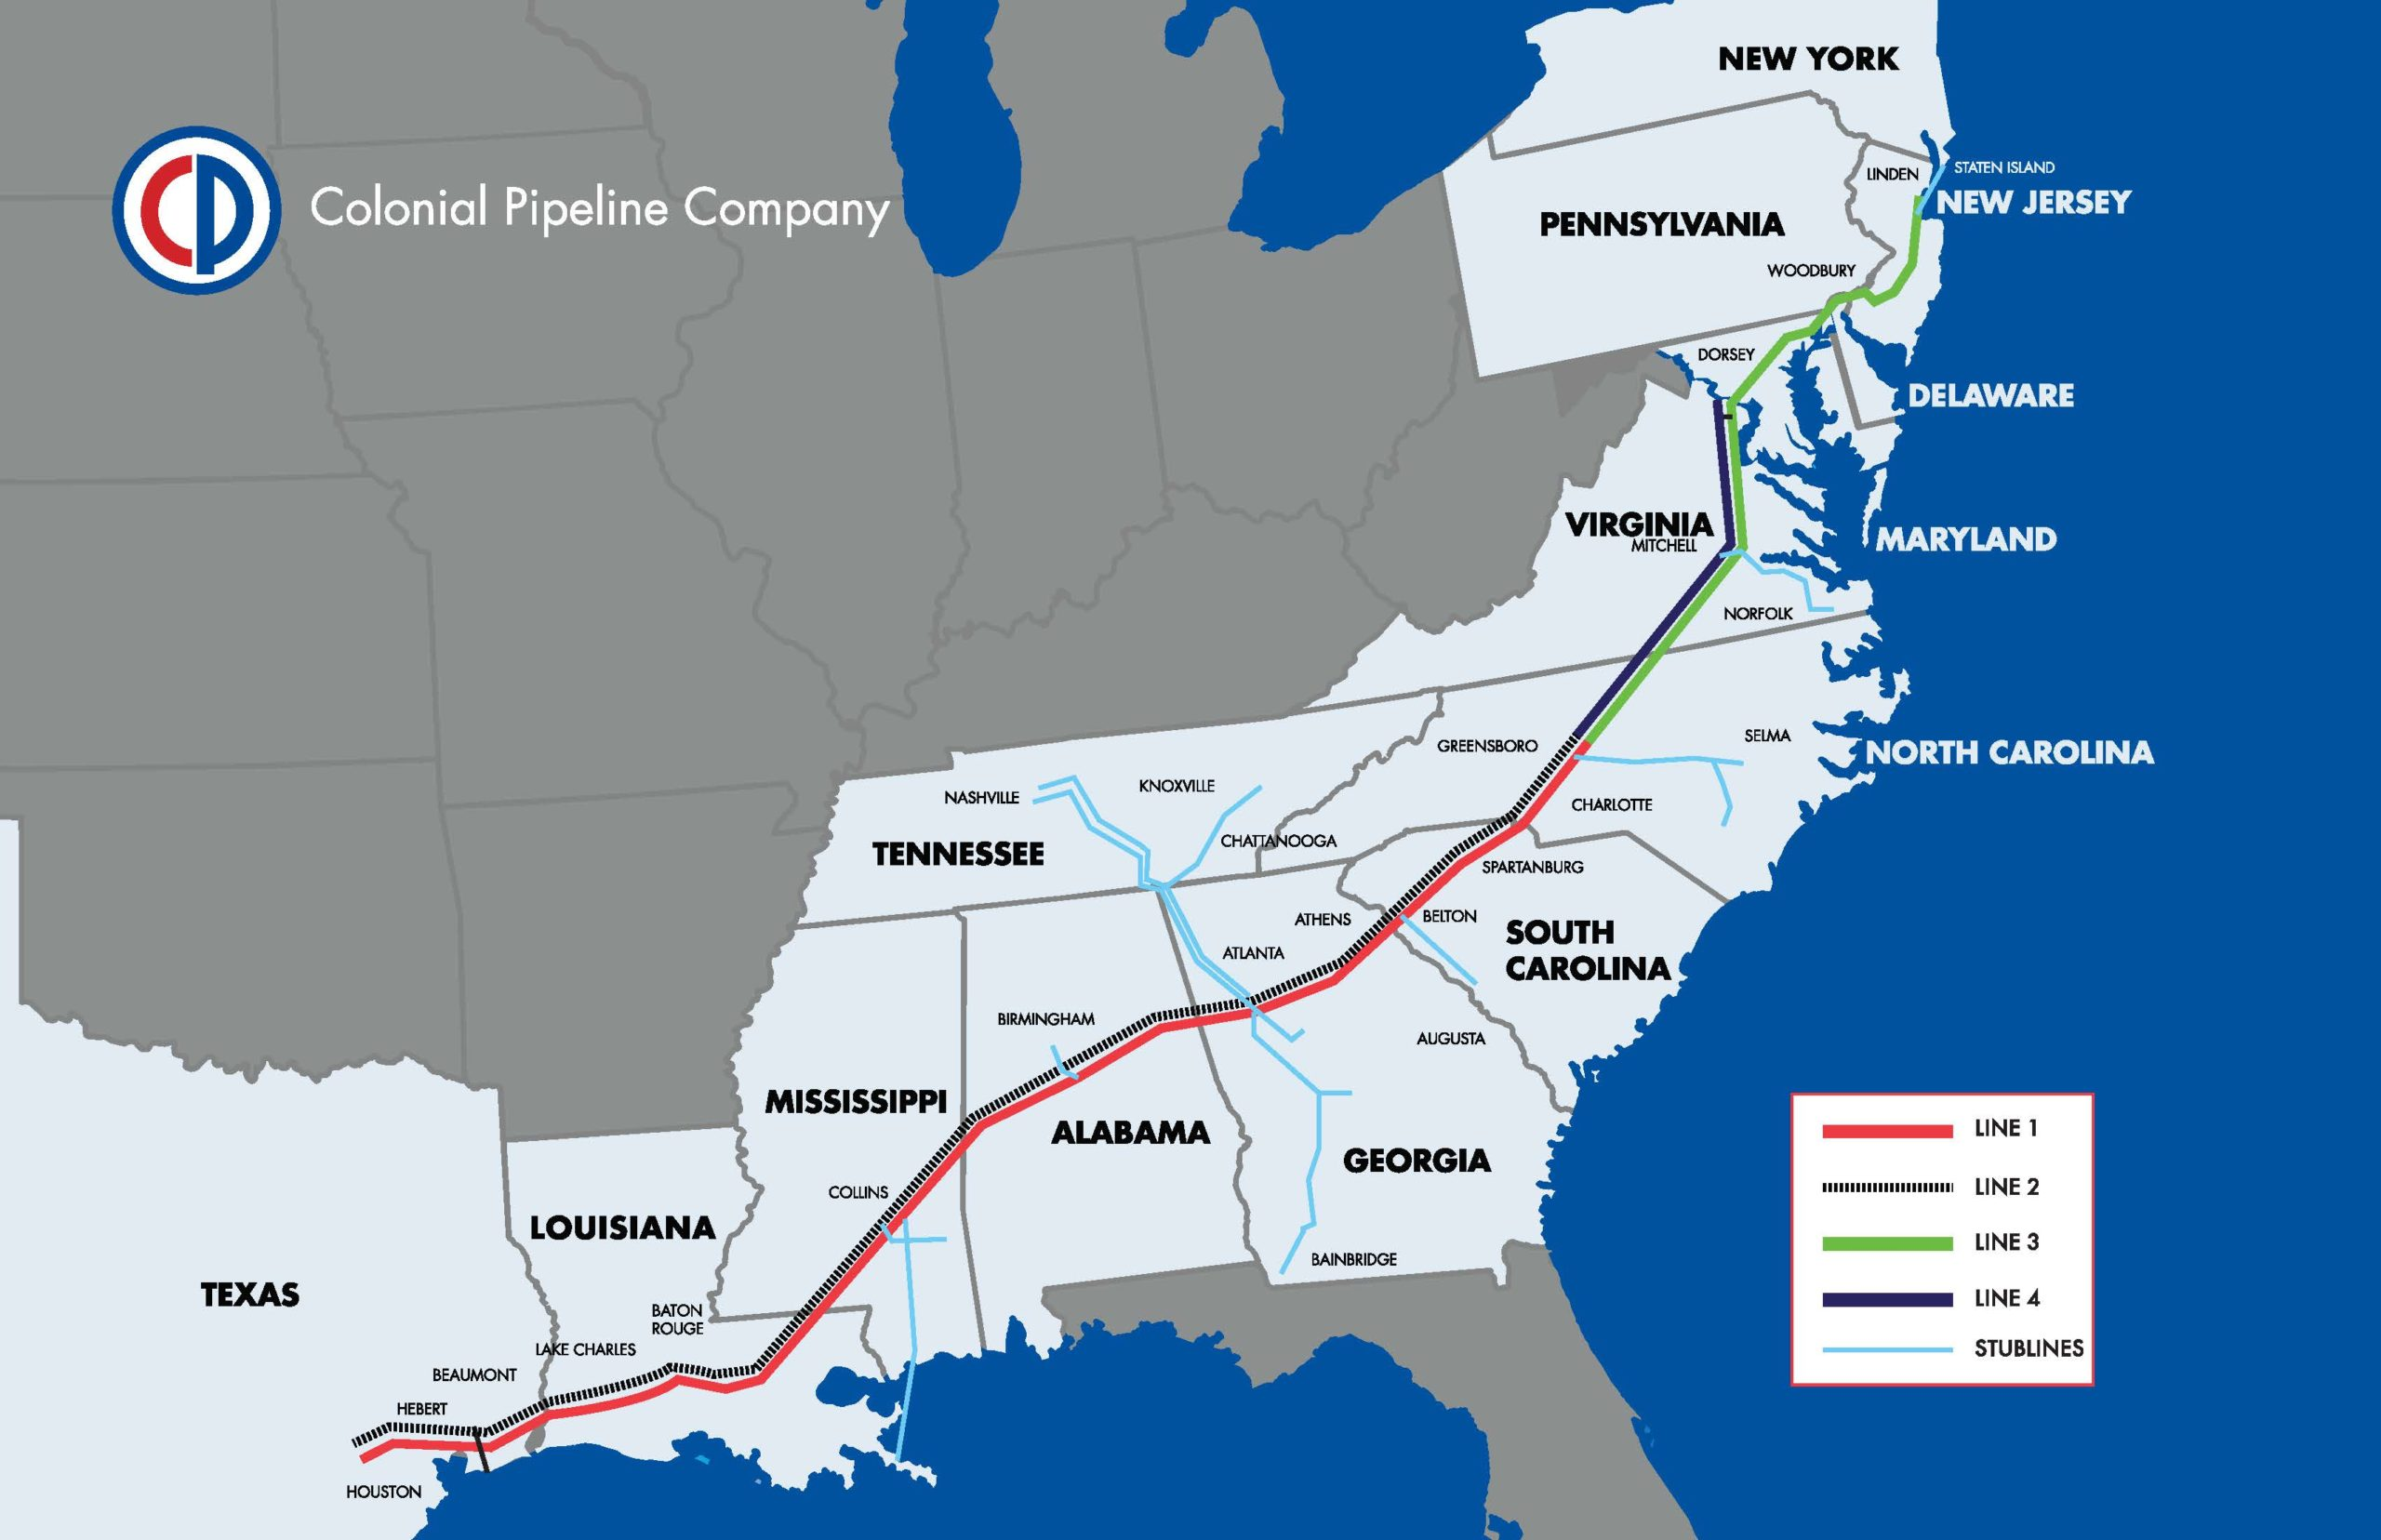 Colonial Pipeline System Map